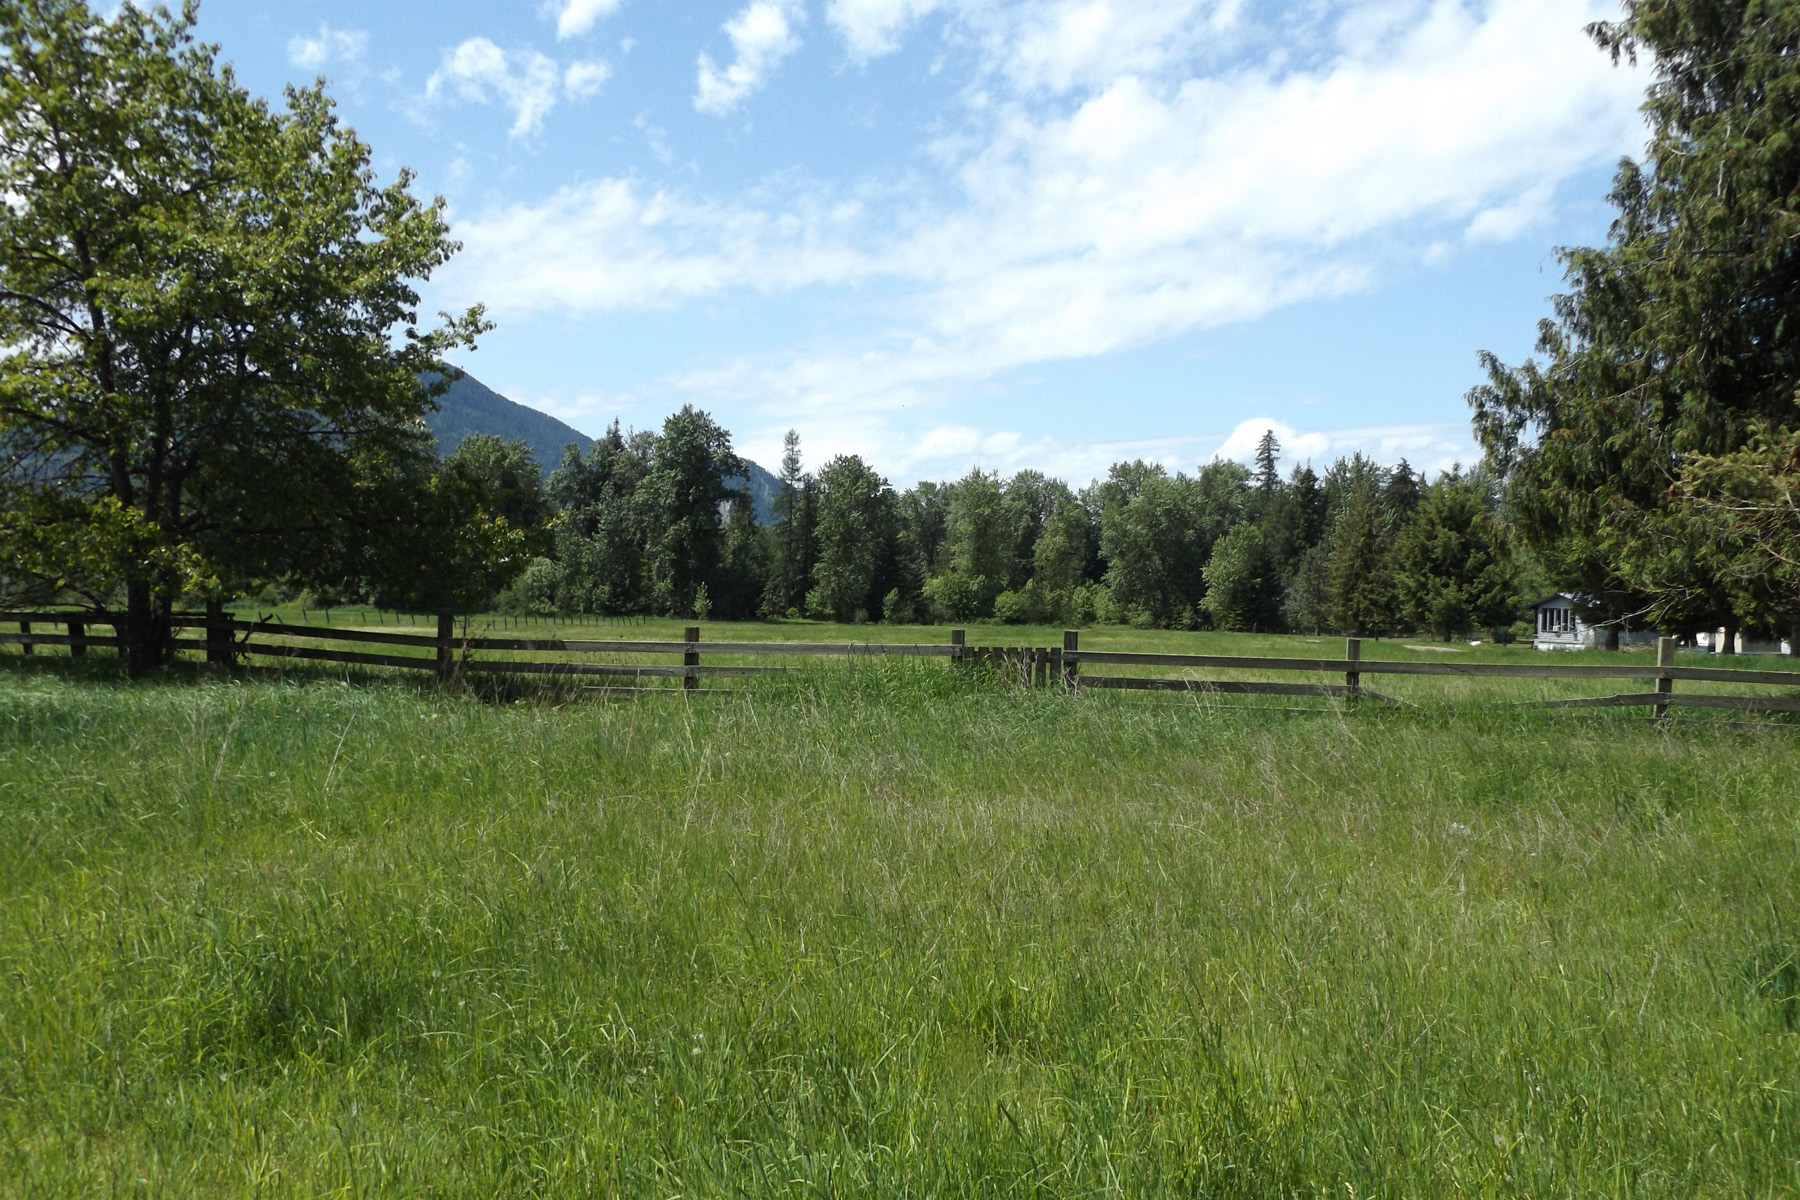 Land for Sale at Amazing Development Potential 317 W. 4th Ave., Clark Fork, Idaho, 83811 United States